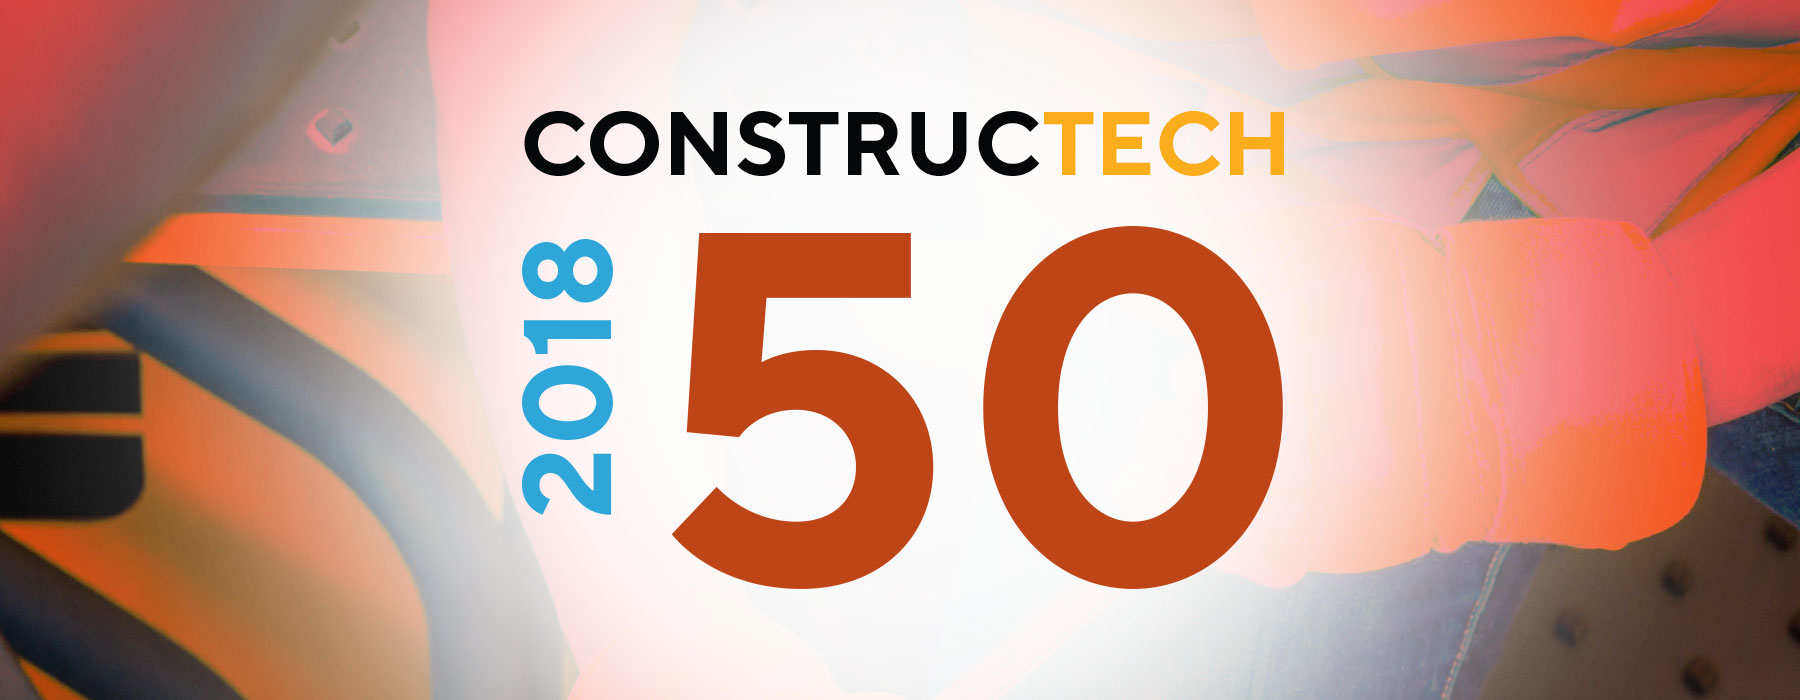 BankLabs Selected to Constructech 50 for 2018